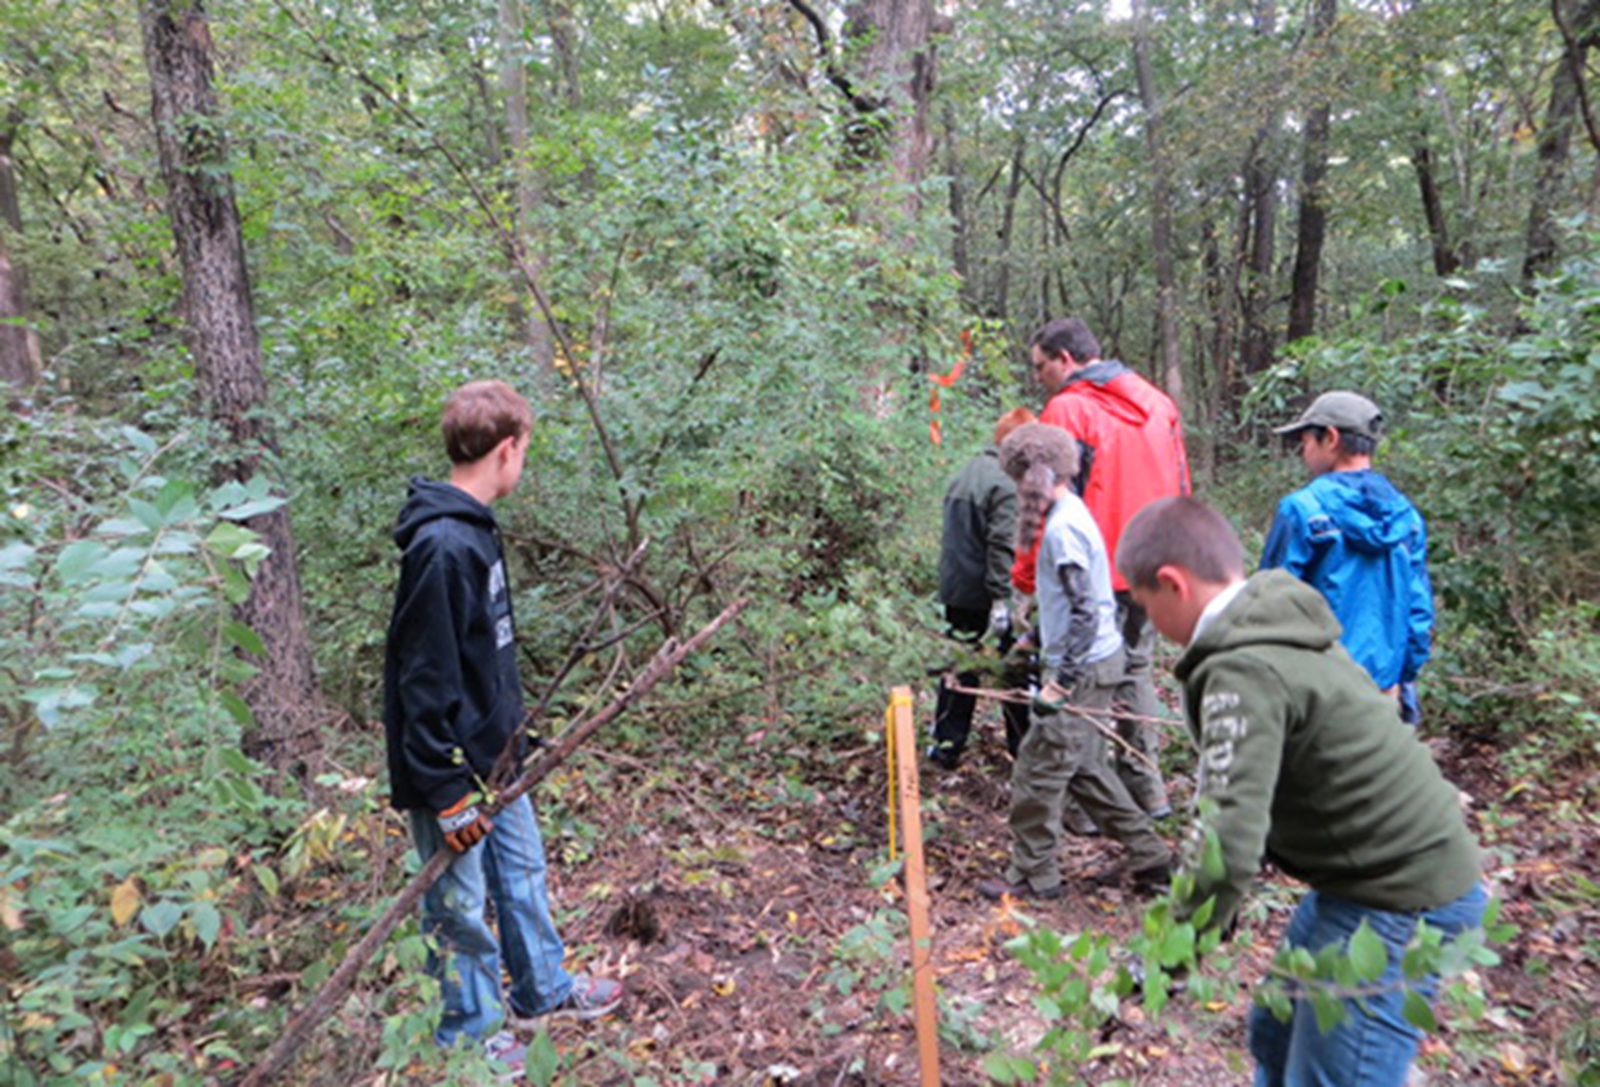 Students building new camp sites. Credit: Polk County Conservation